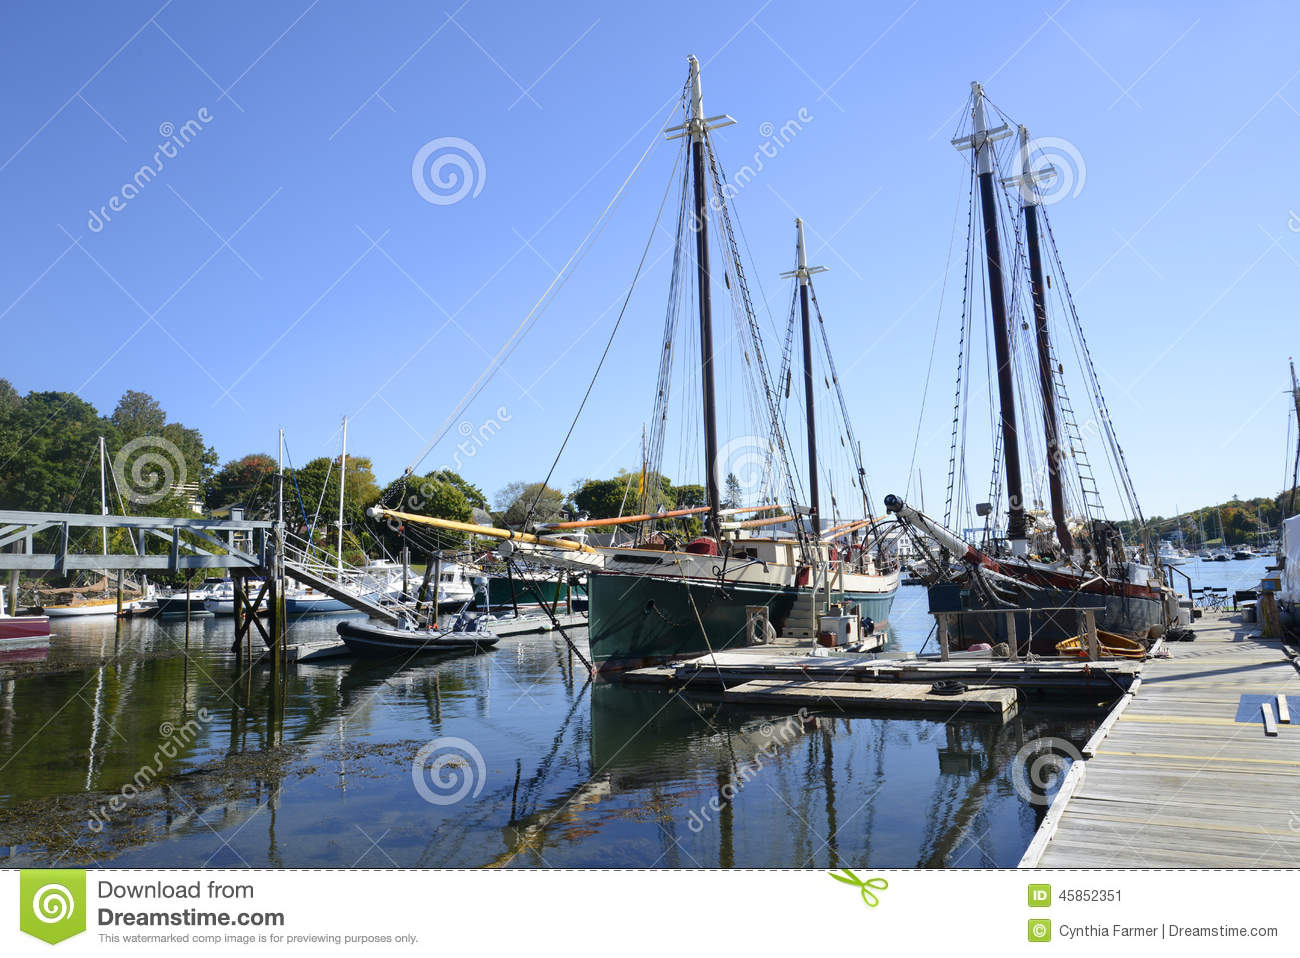 Large sailboats in the camden harbor in maine stock image for The camden